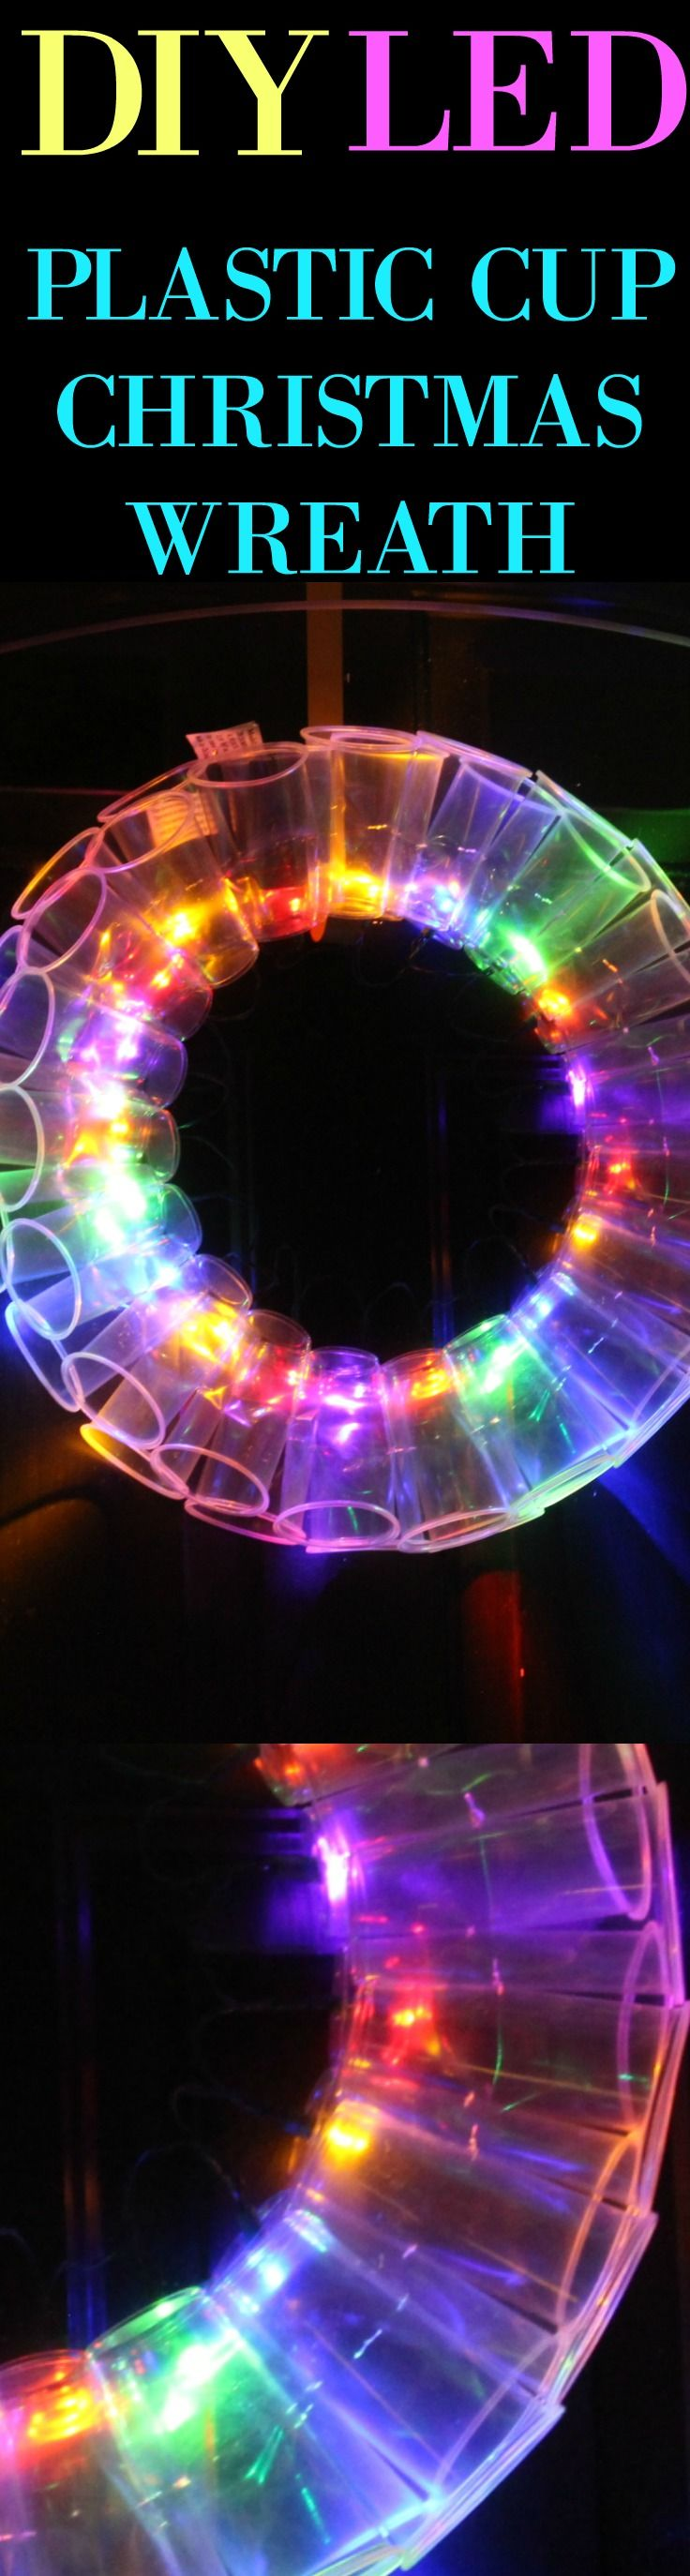 DIY - PLASTIC CUP LED CHRISTMAS WREATH! CHECK IT OUT!